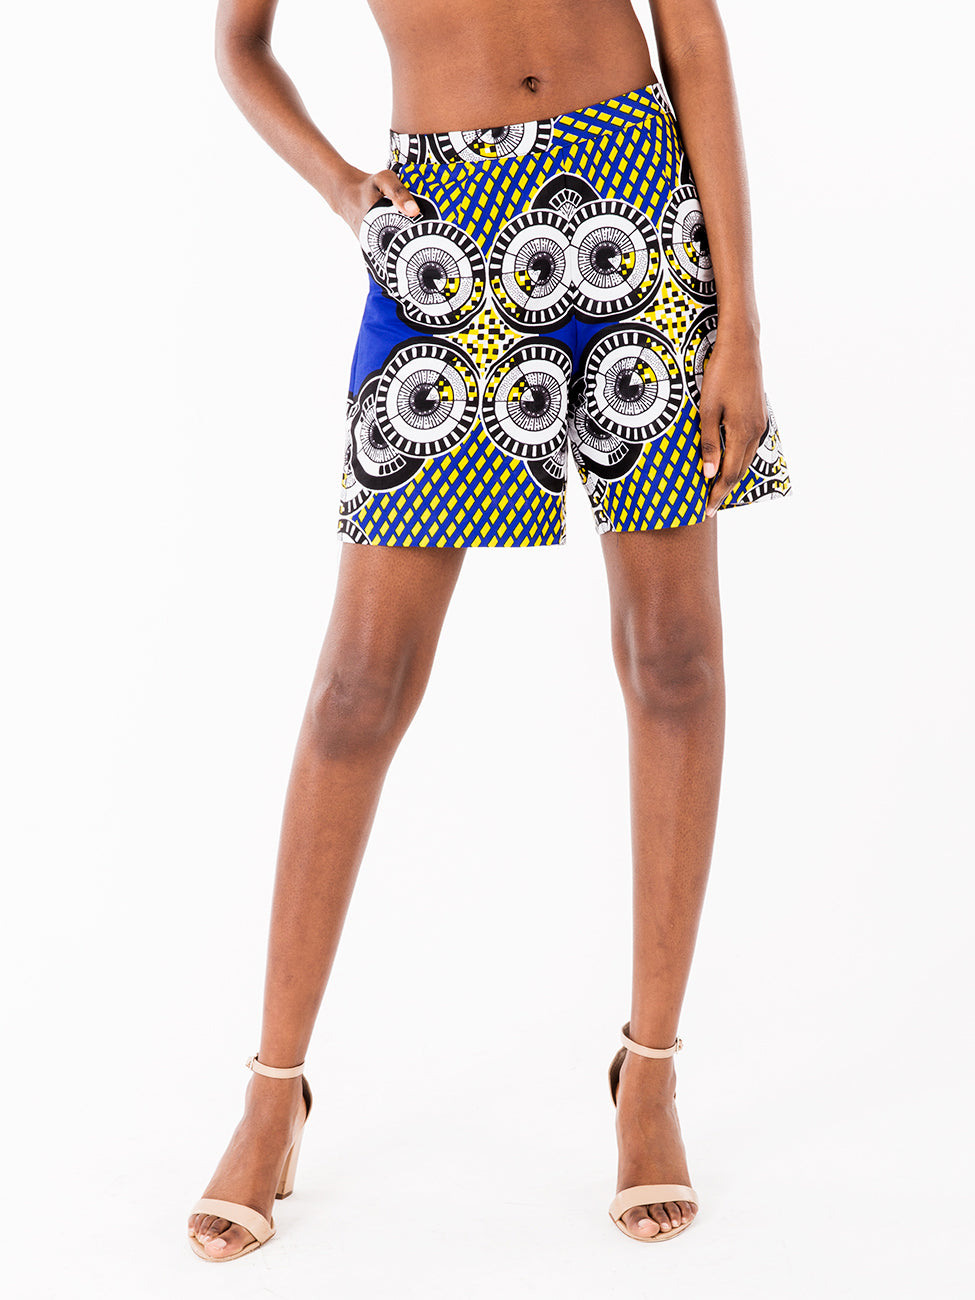 Blue Printed shorts, summer shorts, multi-ethnic